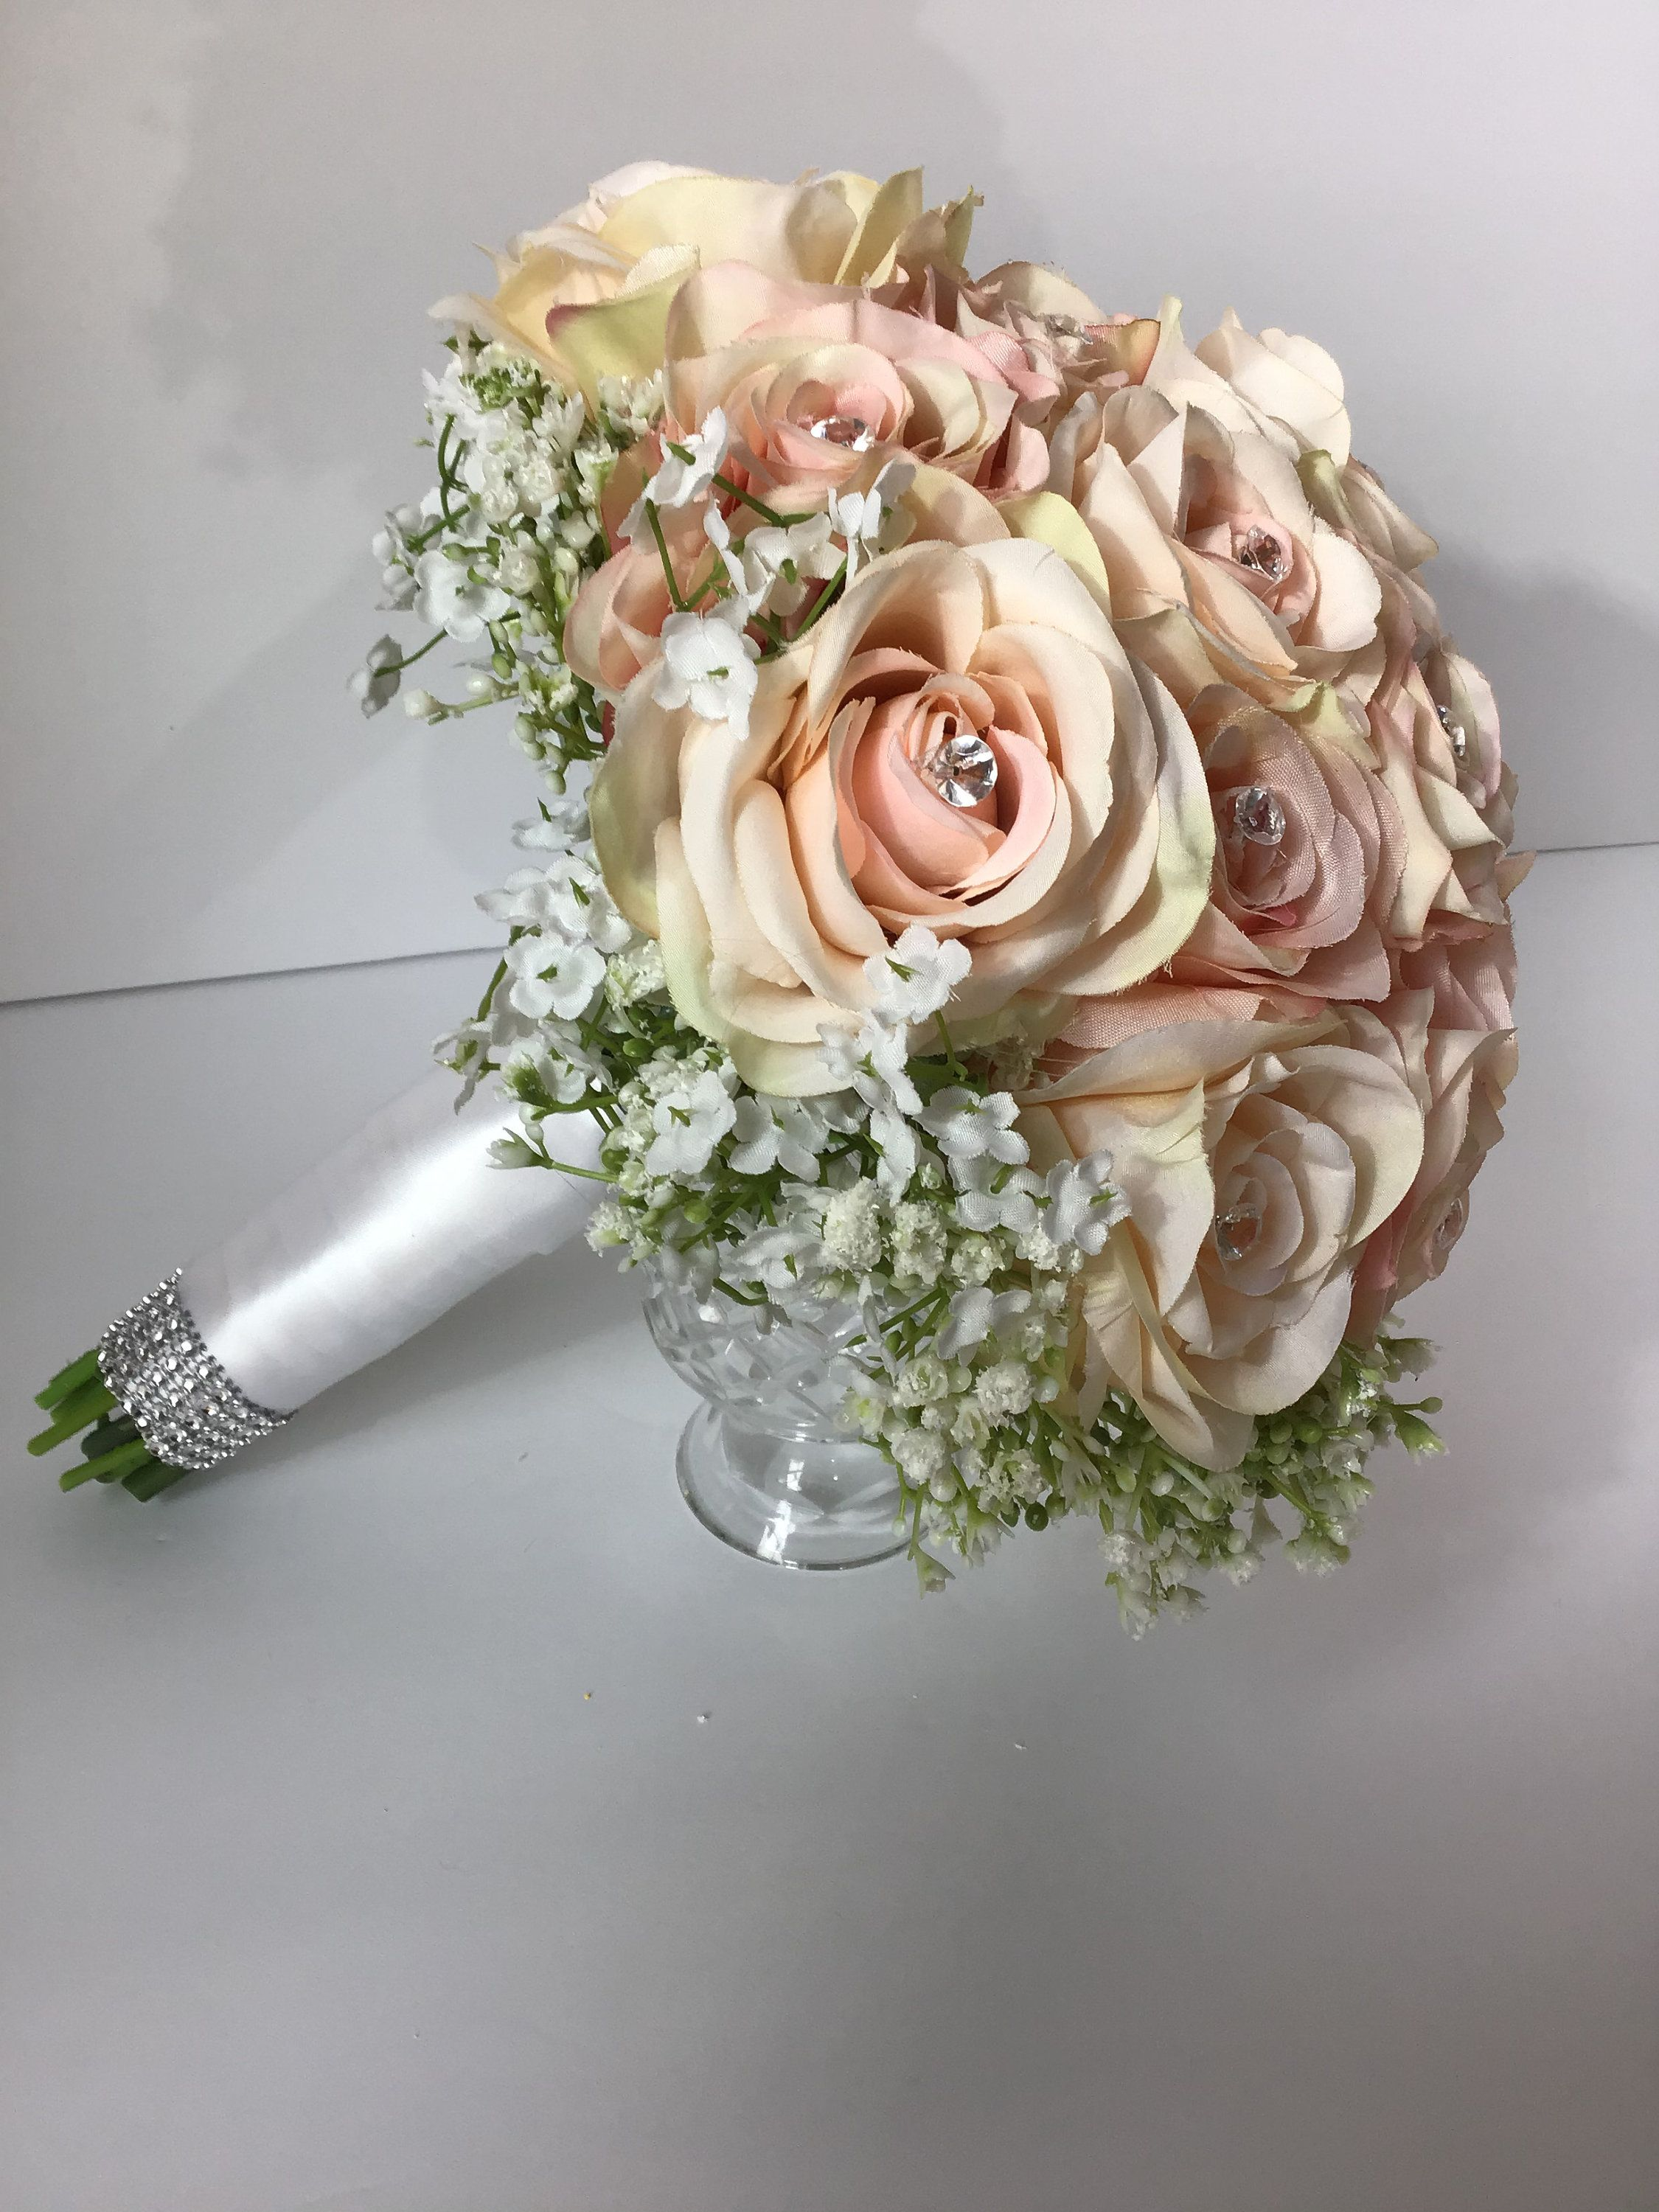 The Heather Collection Silk Flower Blush Rose Babys Breath Etsy In 2020 Rose Bridal Bouquet Wedding Bridal Bouquets Silk Bridal Bouquet